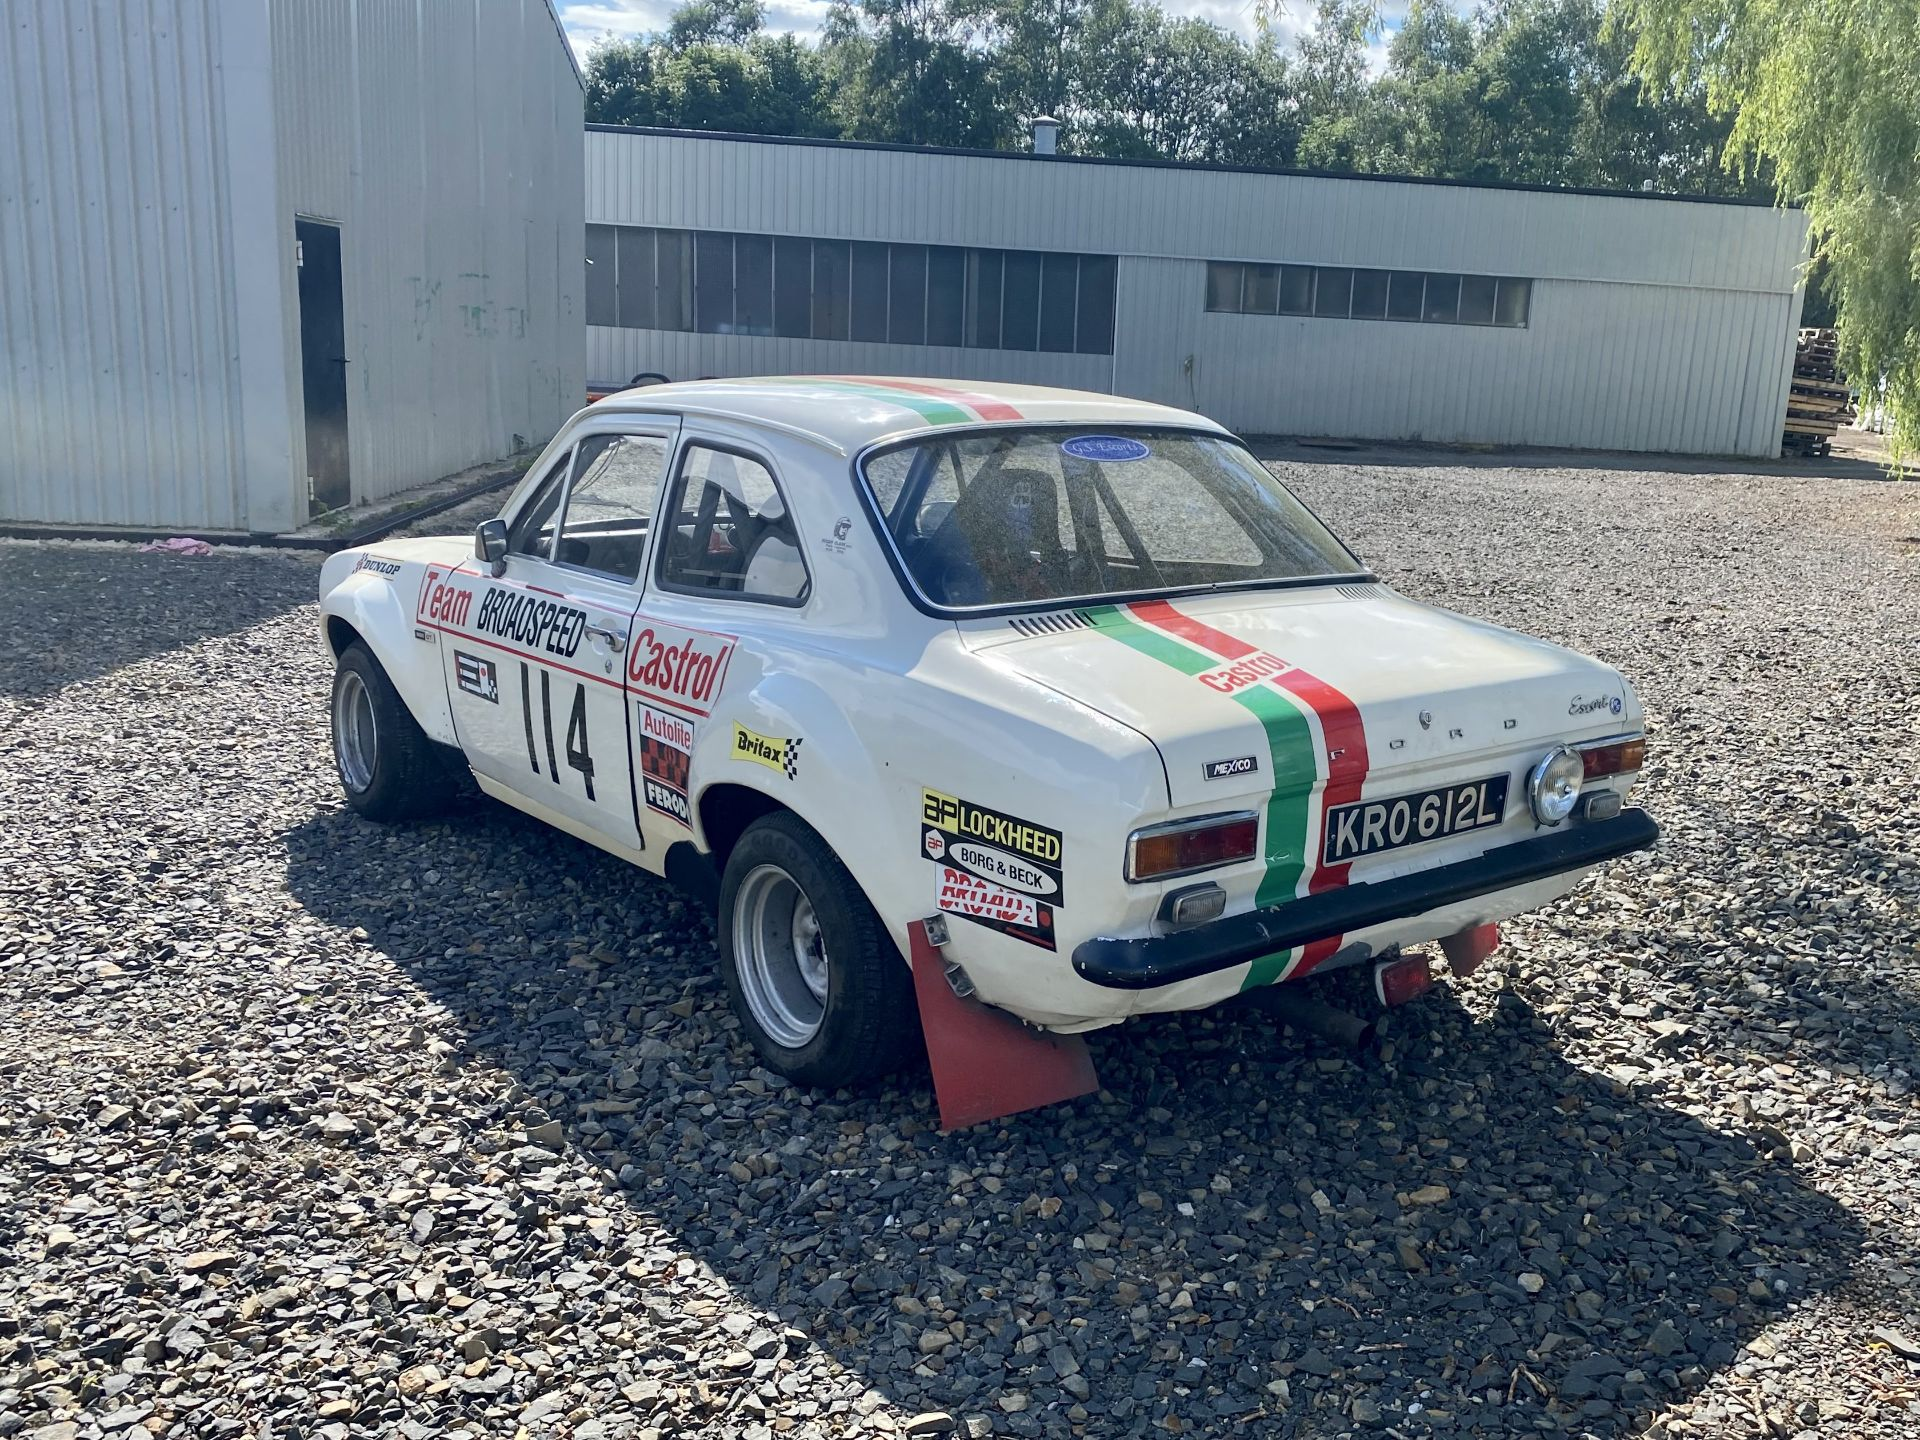 Ford Escort Mexico - Image 20 of 51